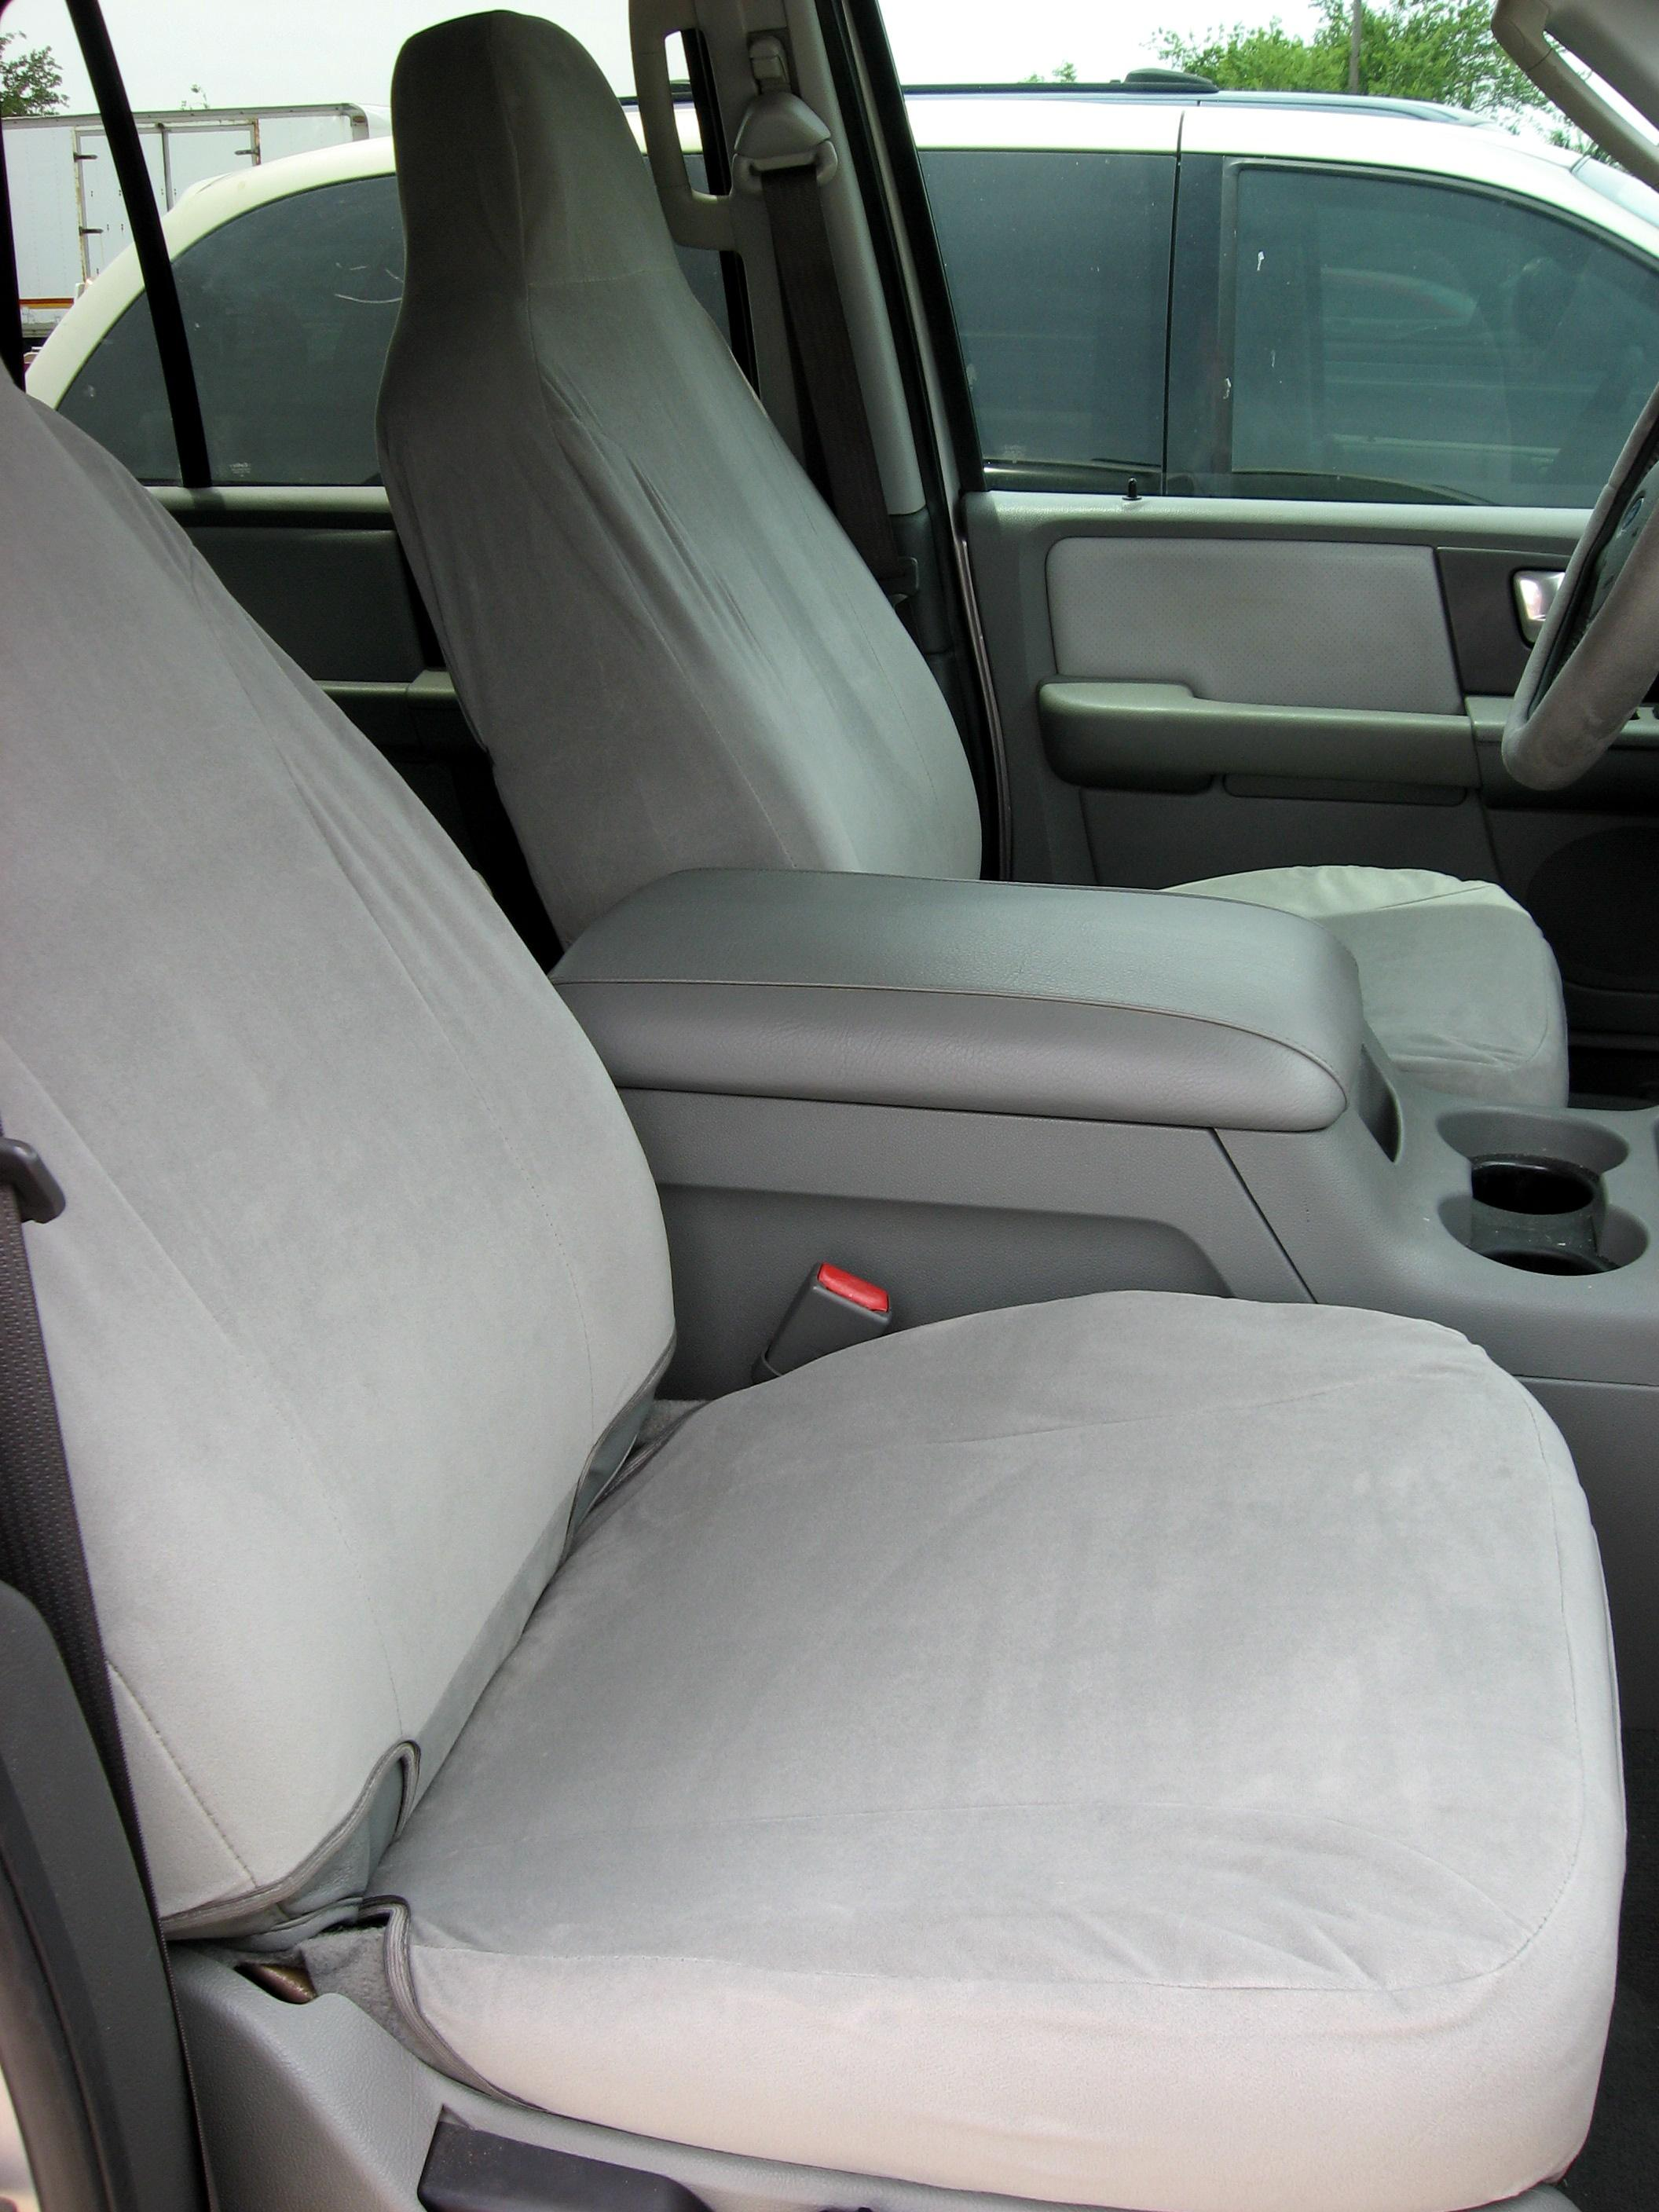 2005 Ford F150 Seat Covers >> 2003-2005 Ford Expedition High Back Bucket Seats without Airbags | Durafit Covers | Custom Fit ...